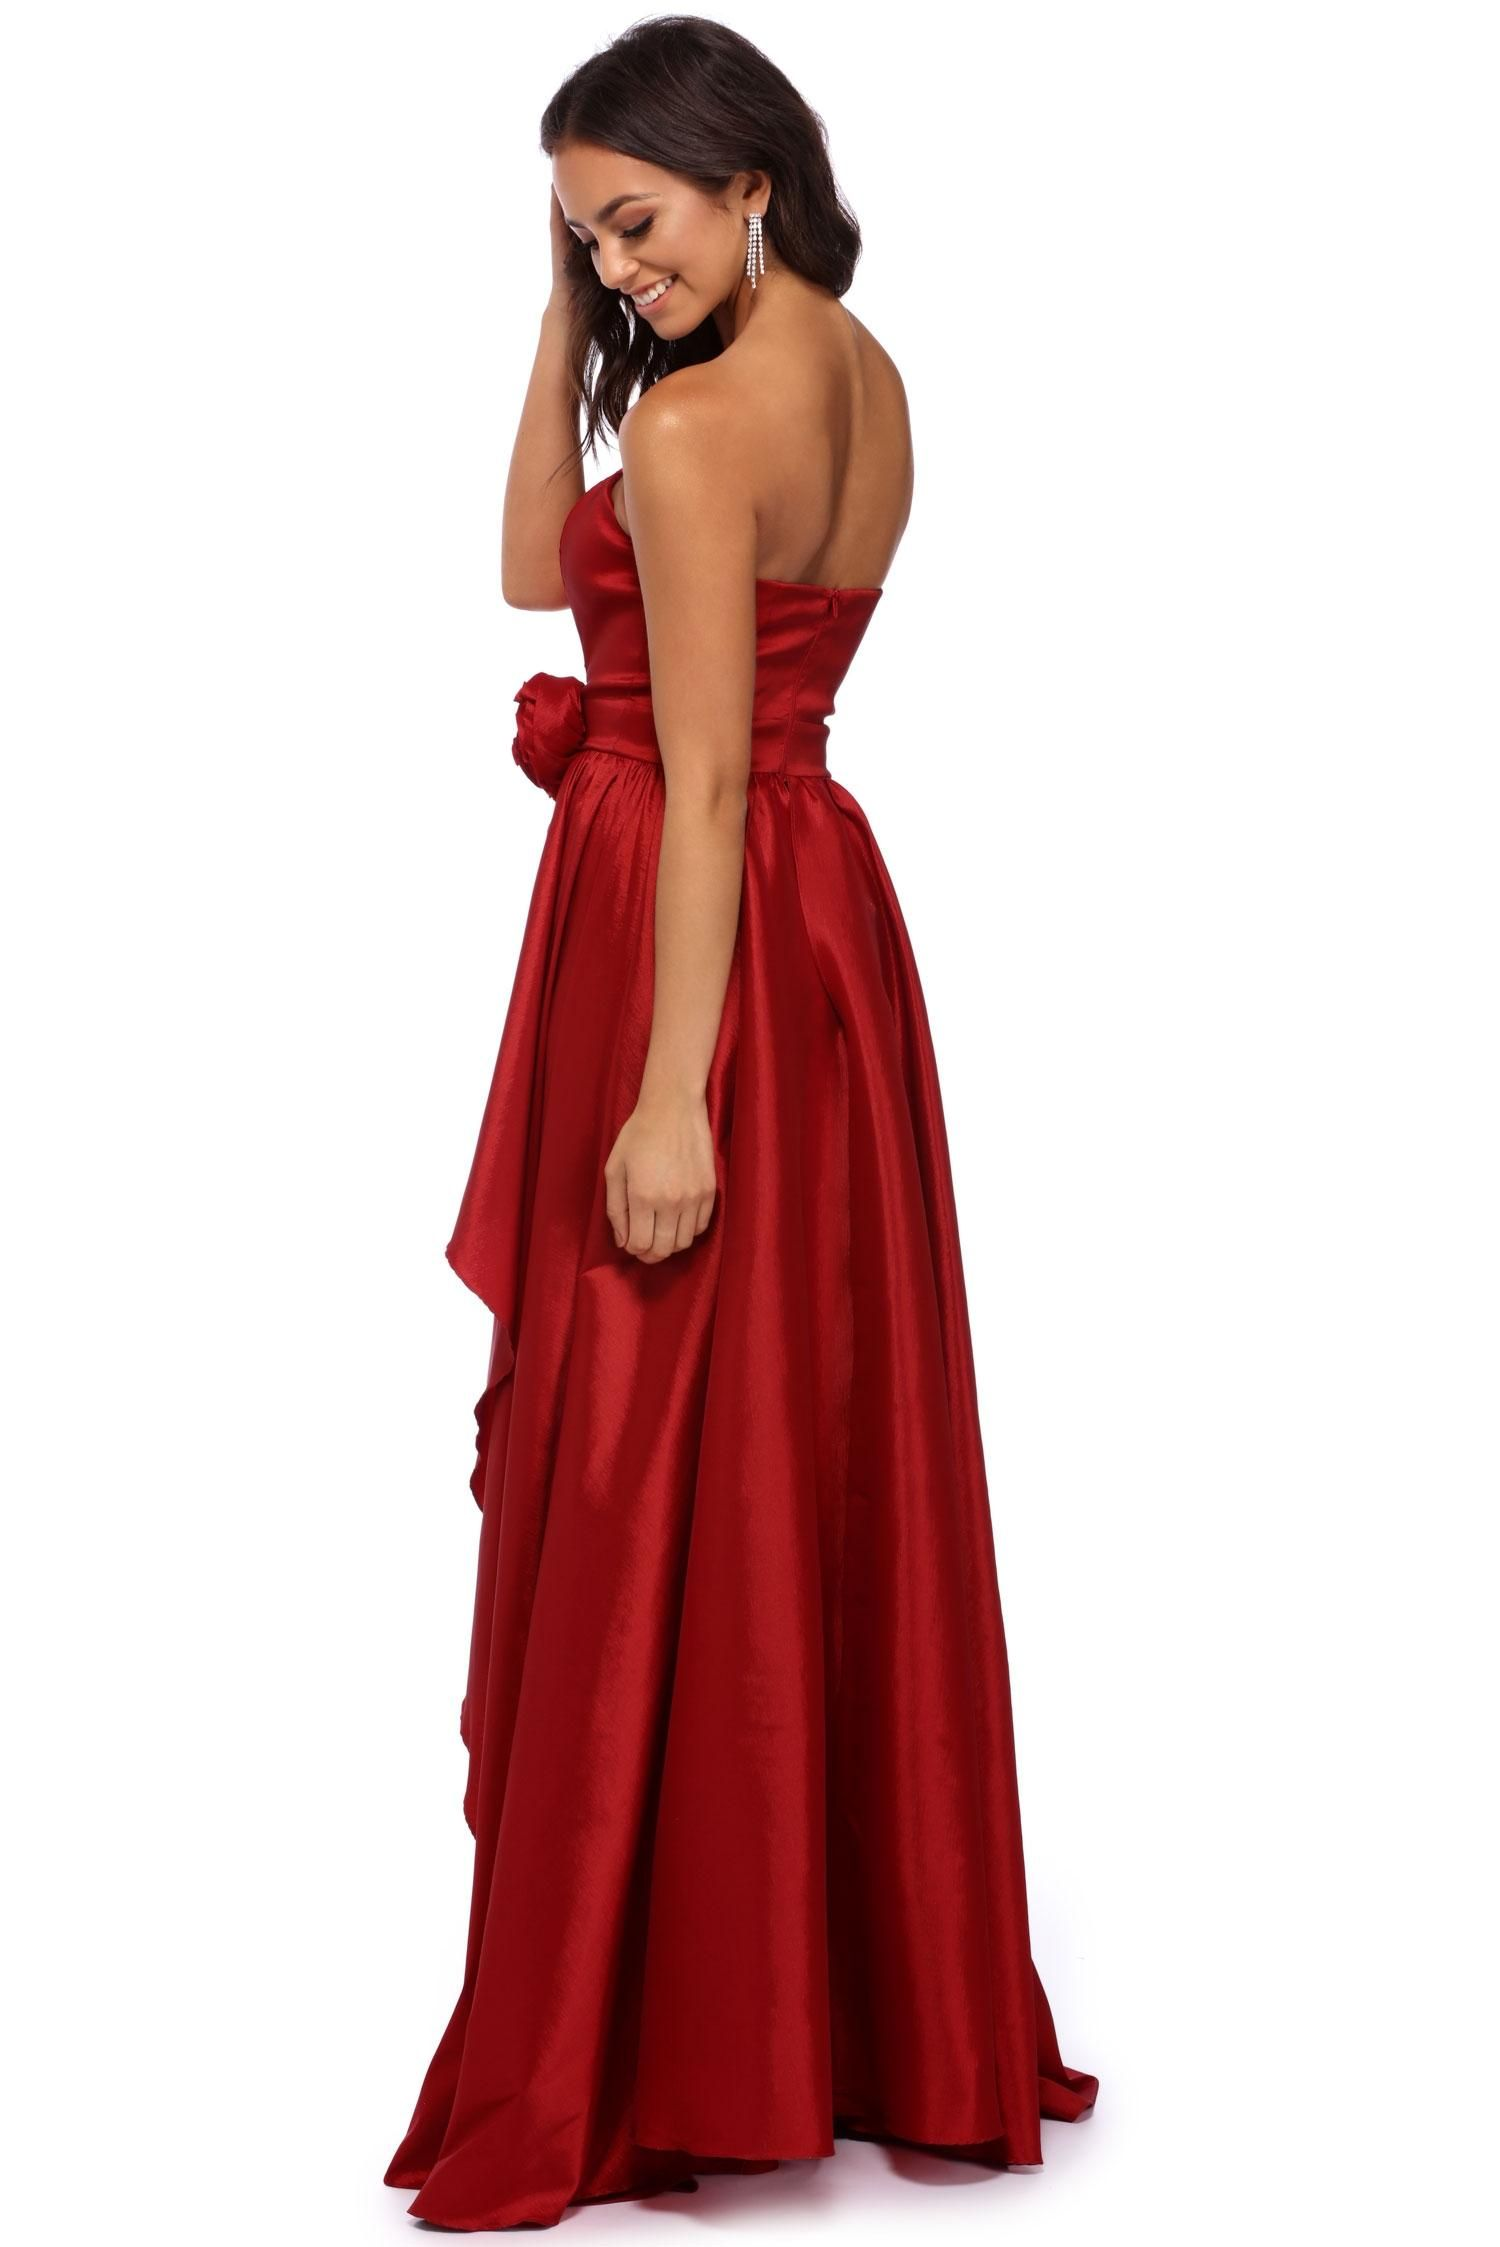 Arabelle red strapless ball gown ball gowns and gowns